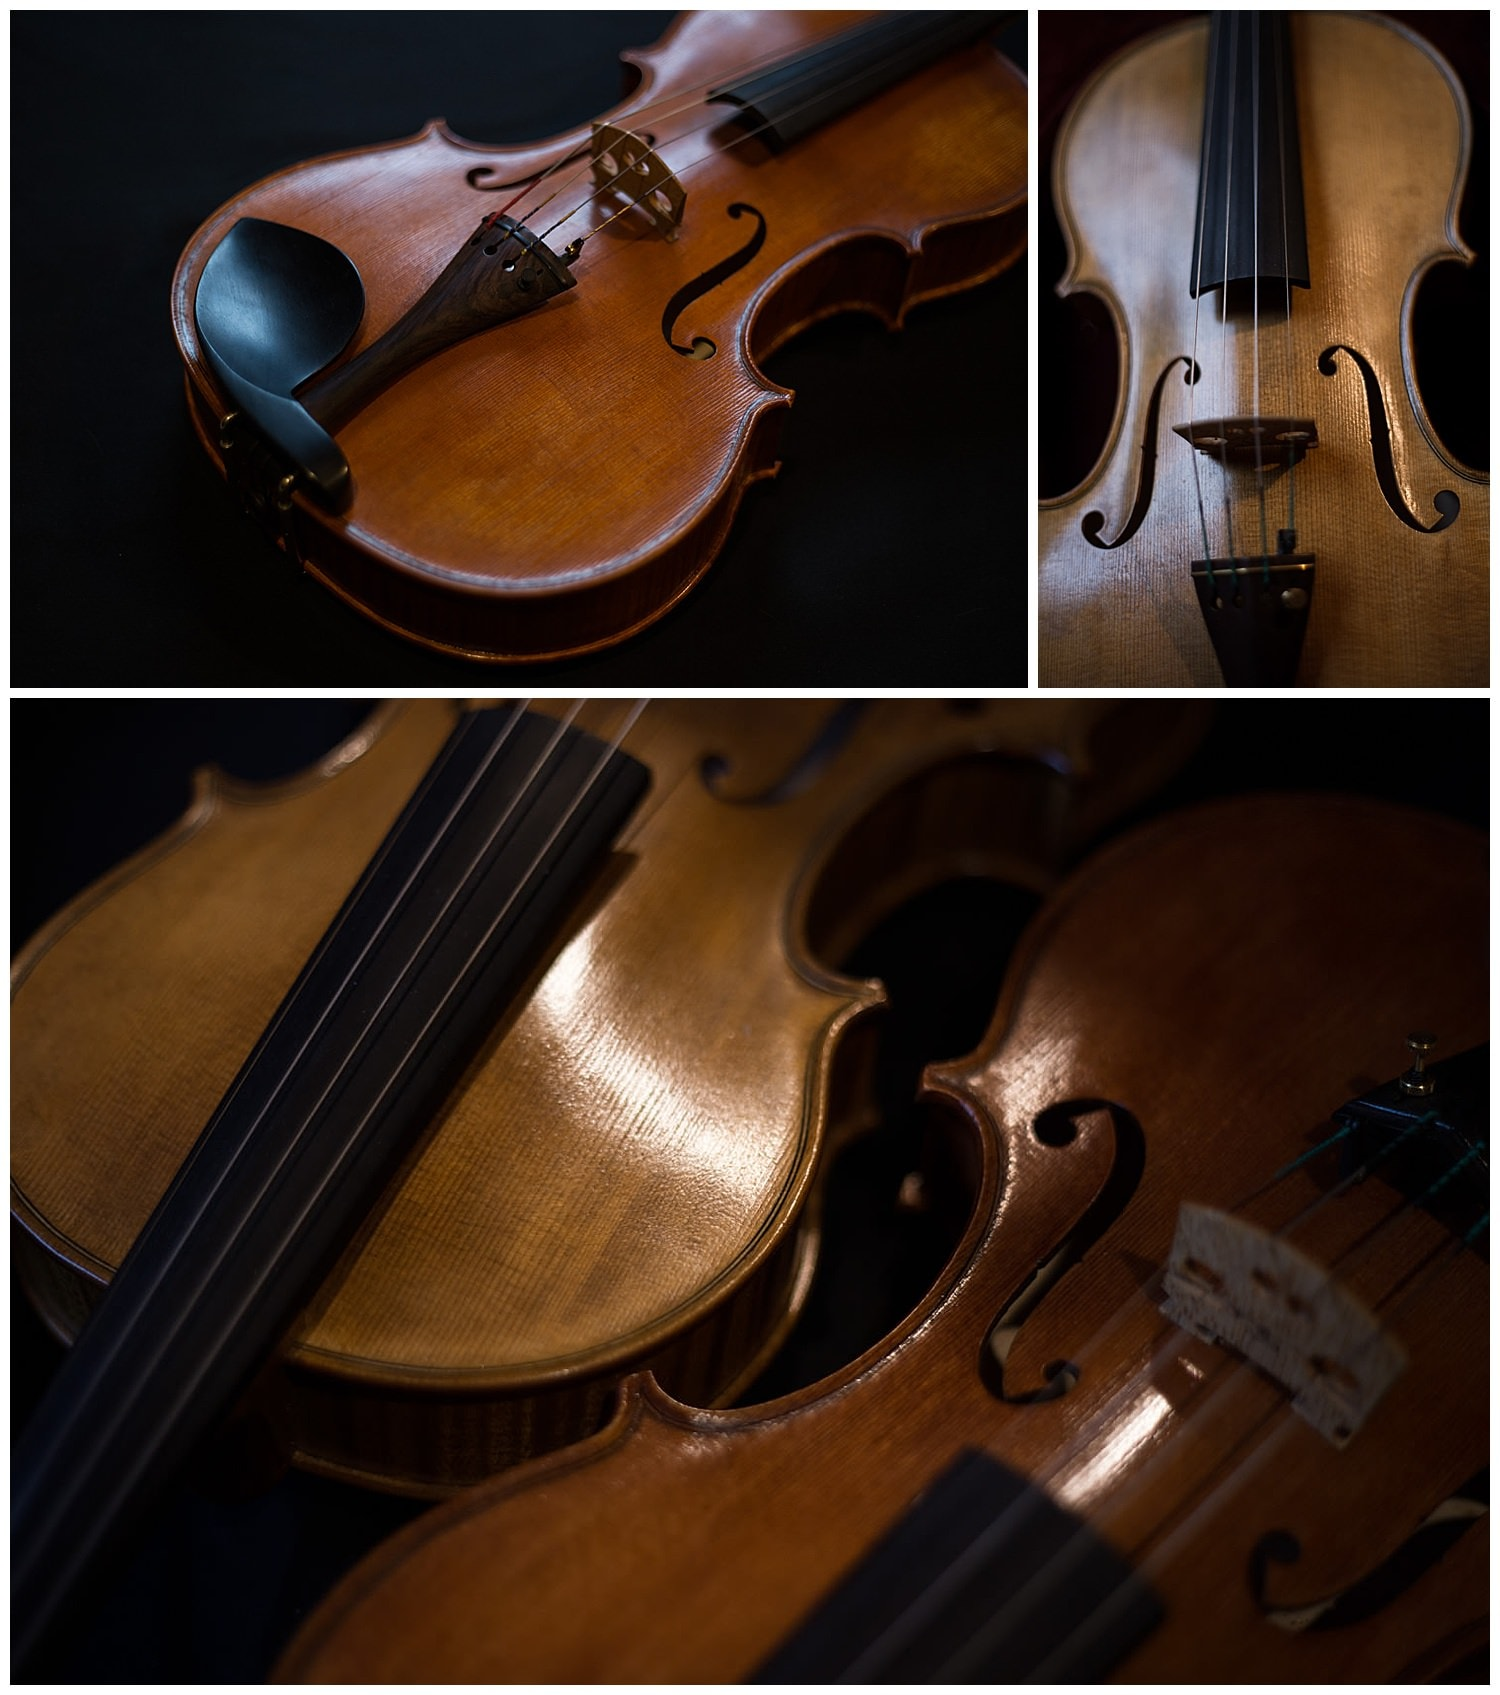 violons artisan luthier